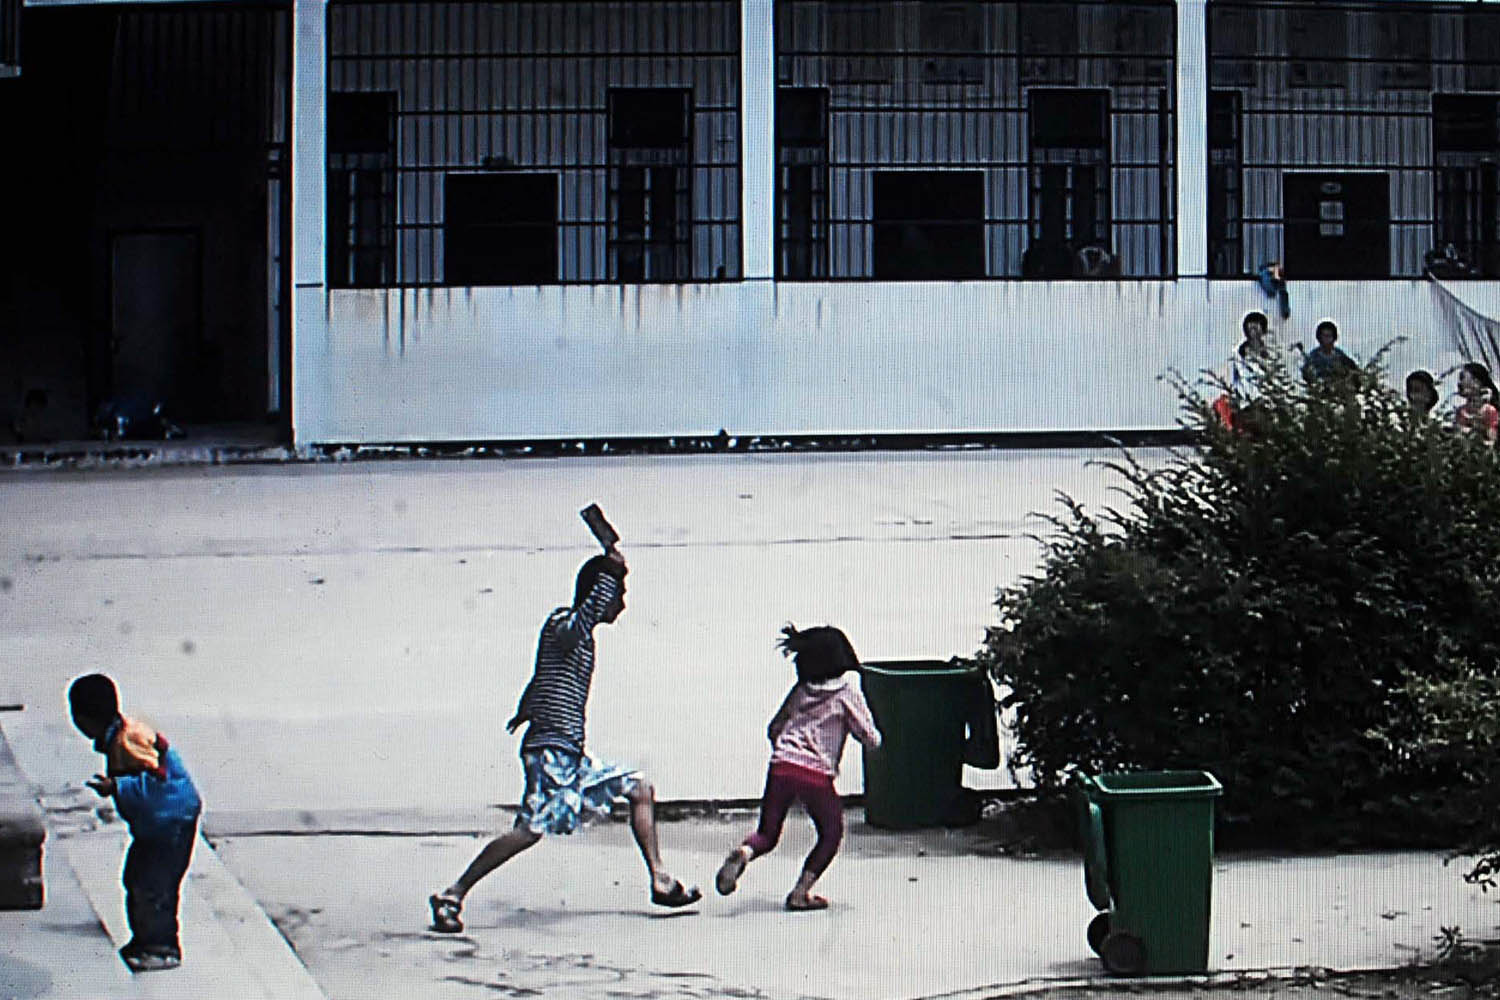 May 20, 2014. A picture taken from a security video shows a knife-wielding attacker going on a rampage at a Chinese primary school in Macheng, central China's province of Hubei, wounding eight schoolchildren with one seriously hurt.